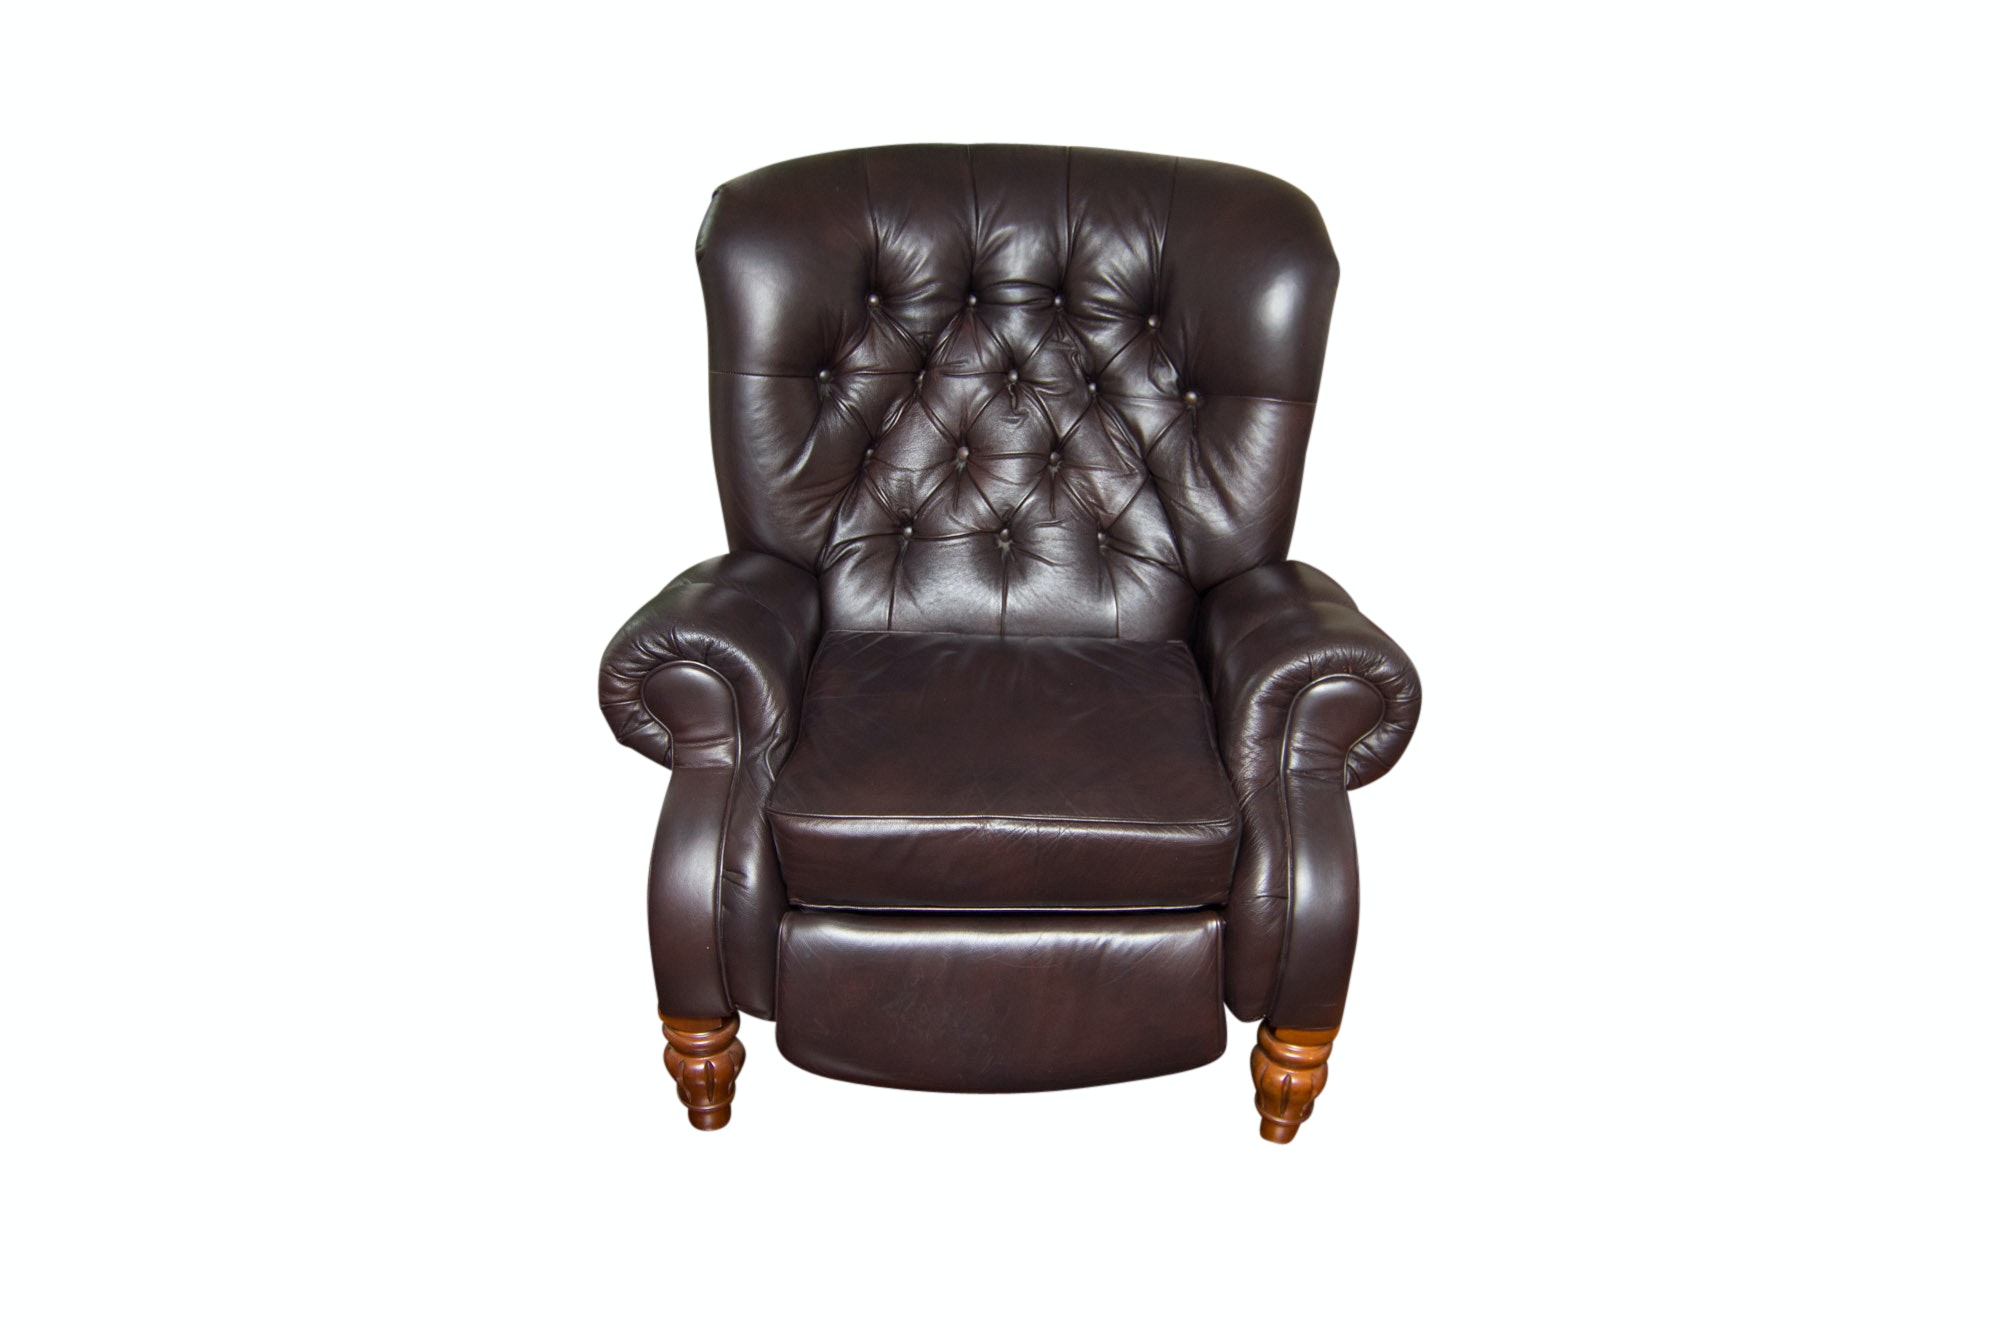 Leather Tufted Recliner